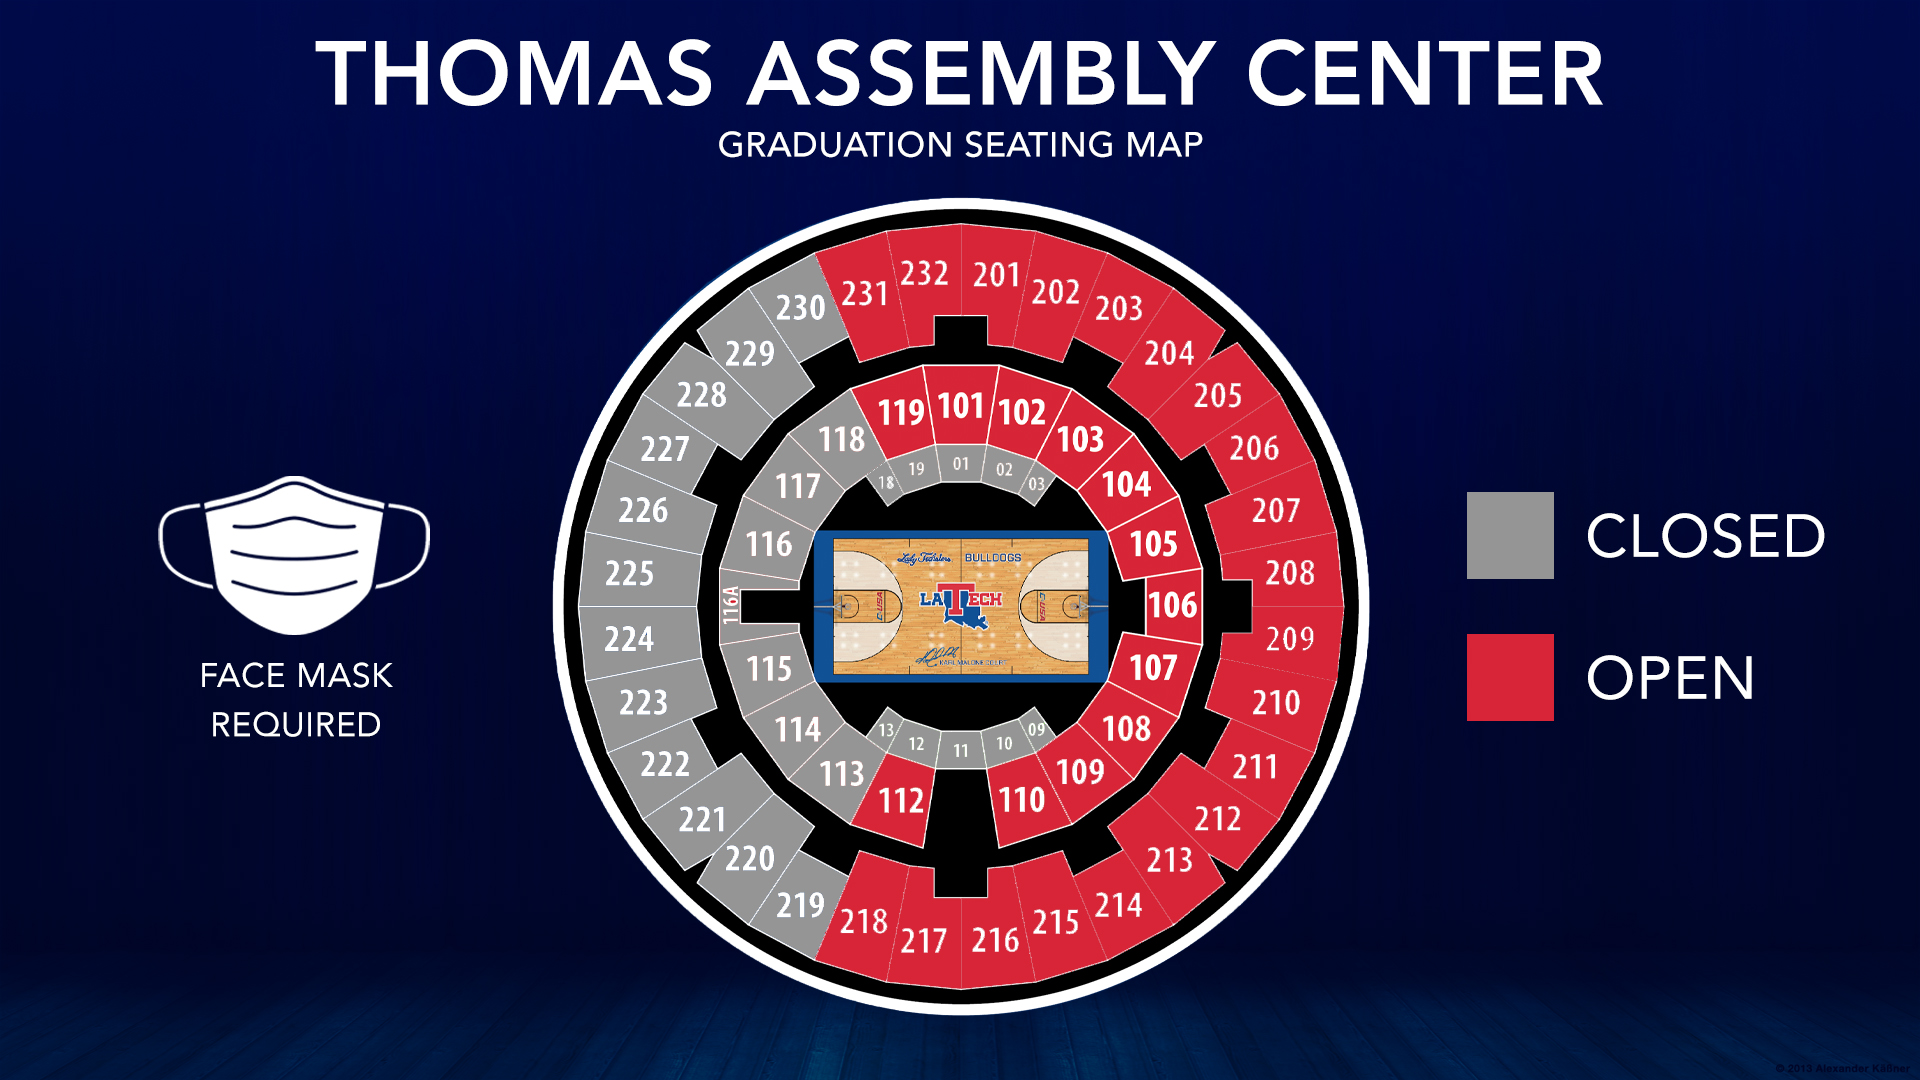 Seating map shows sections of the 100 and 200-levels of the TAC open for seating.